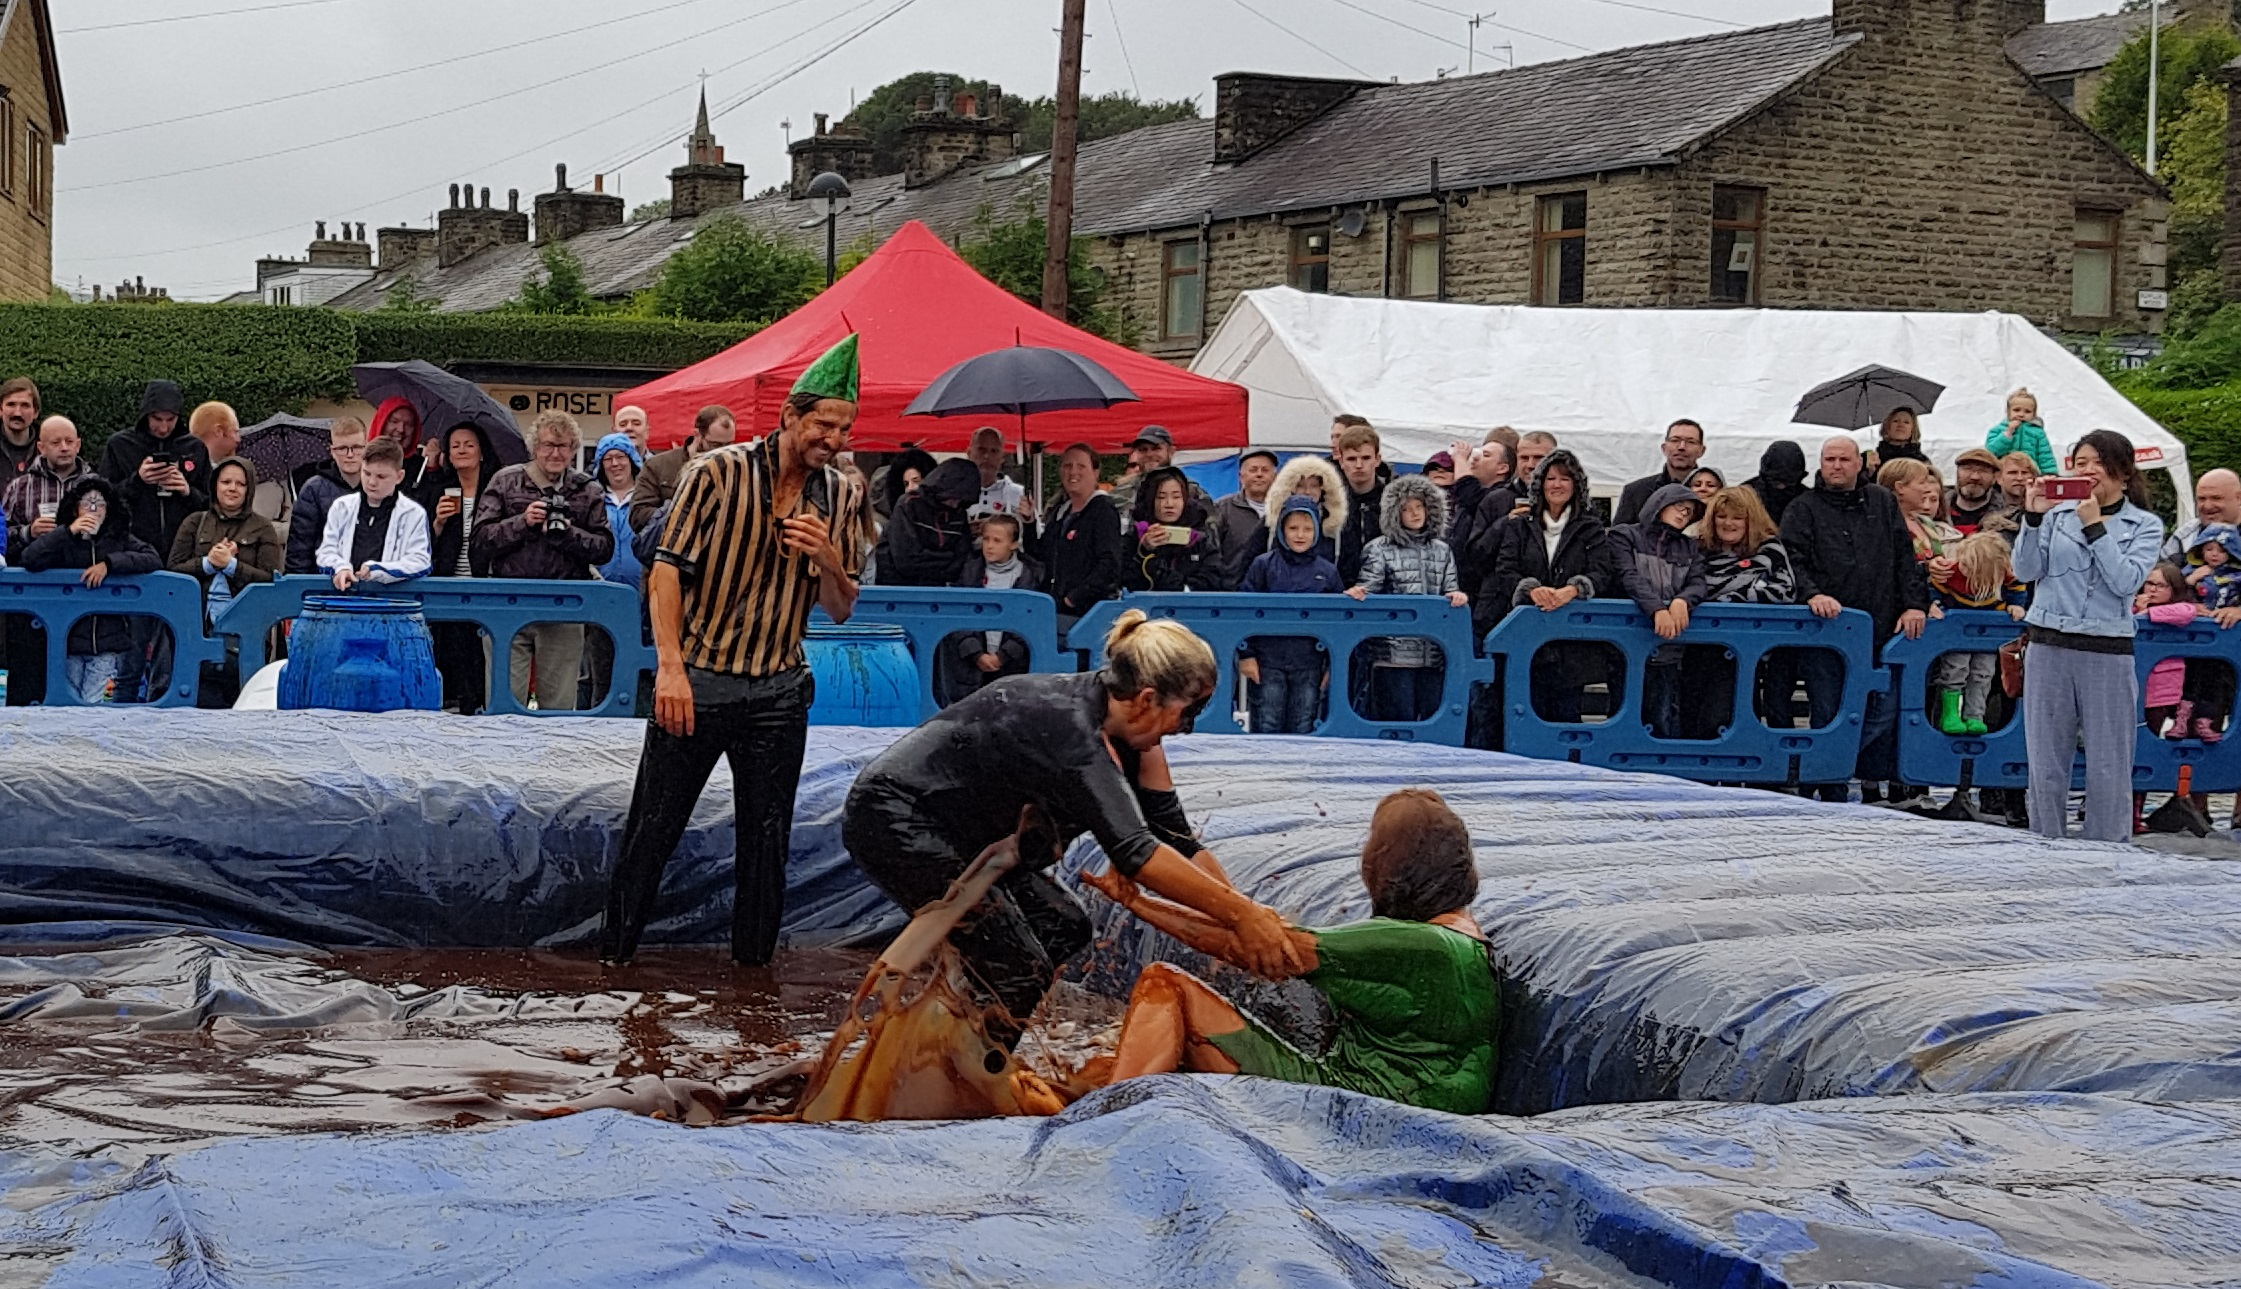 Gravy Wrestling 2018 - Bat Girl Peter pan